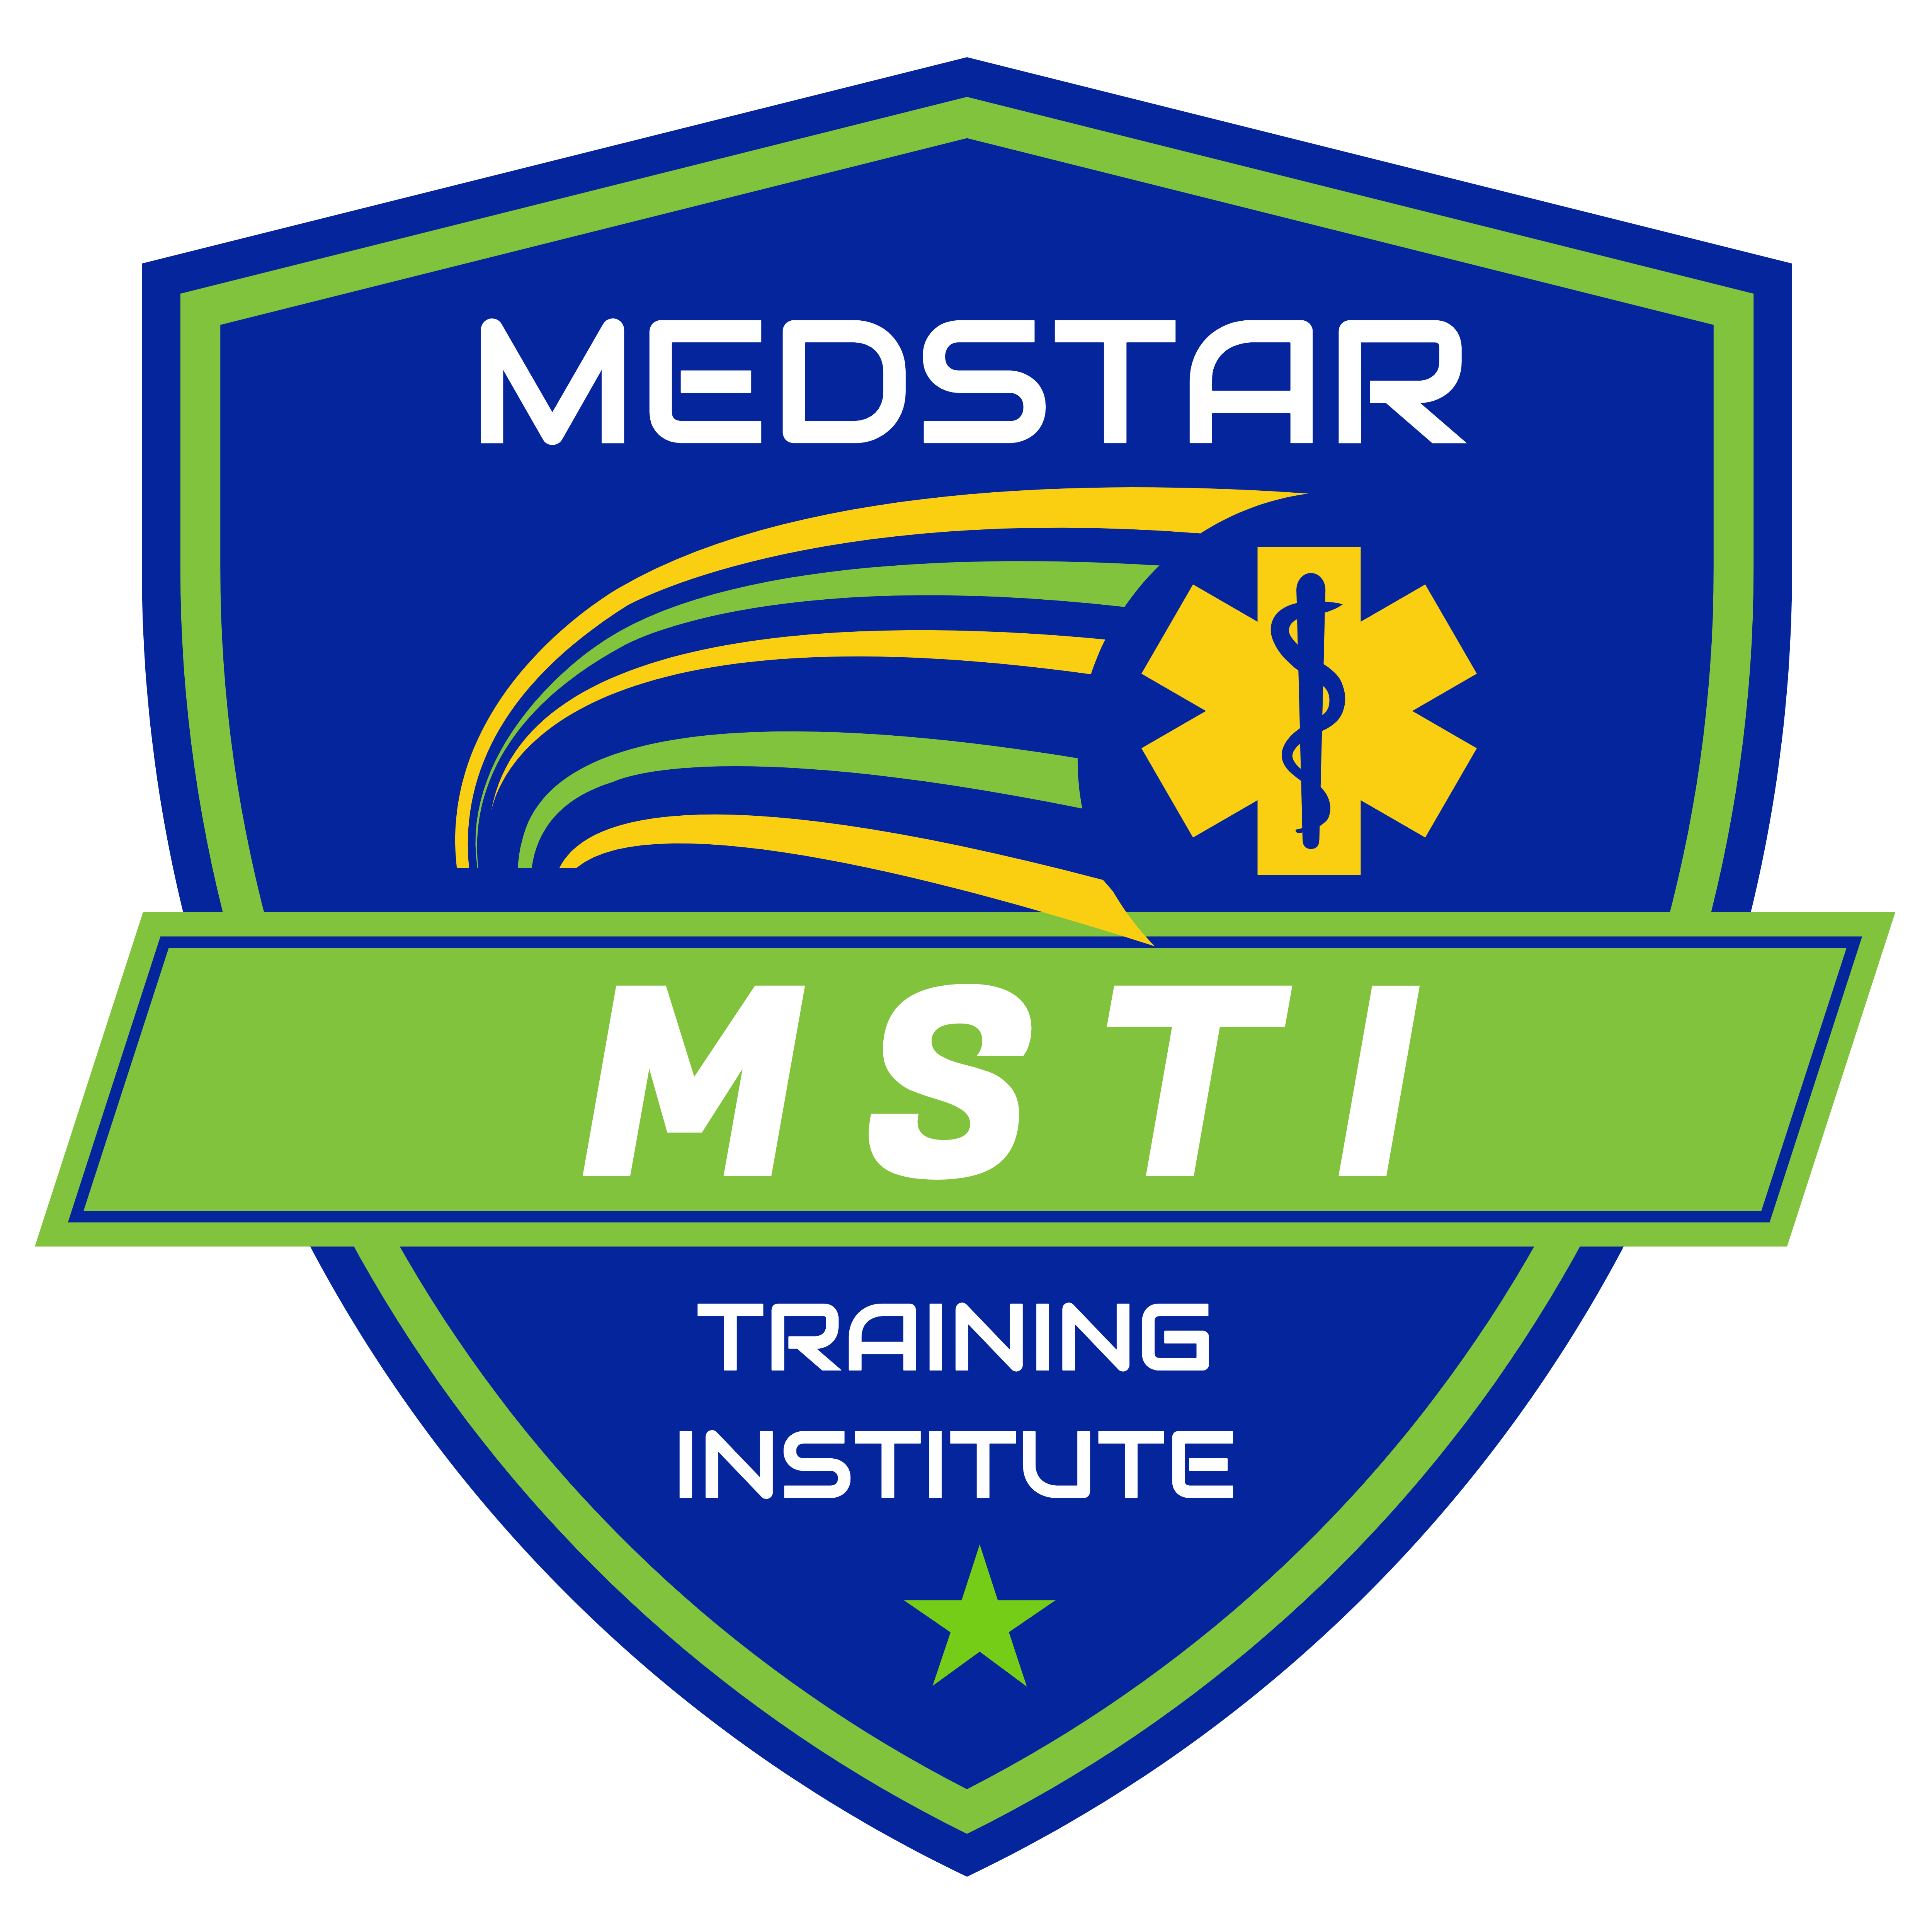 MedStar Training Institute